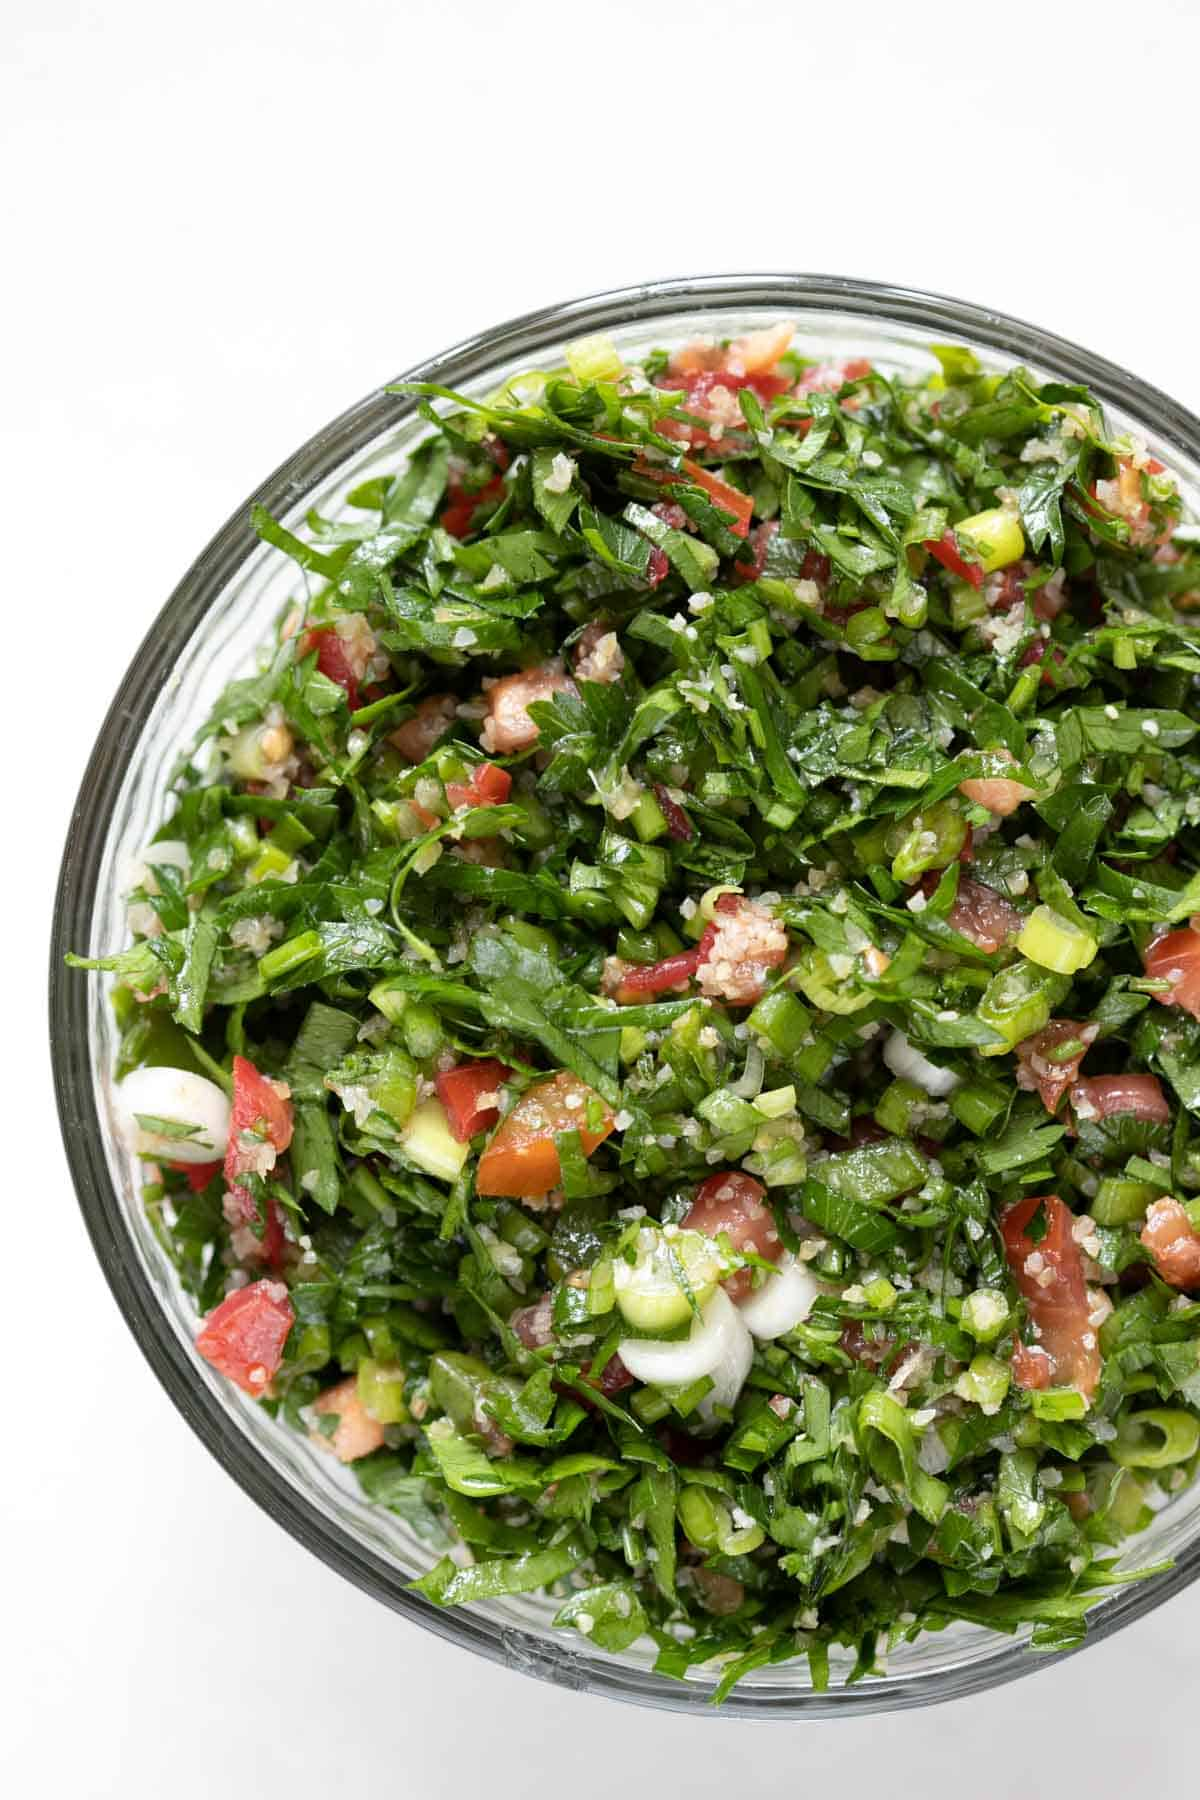 authentic Lebanese tabouli in a glass bowl